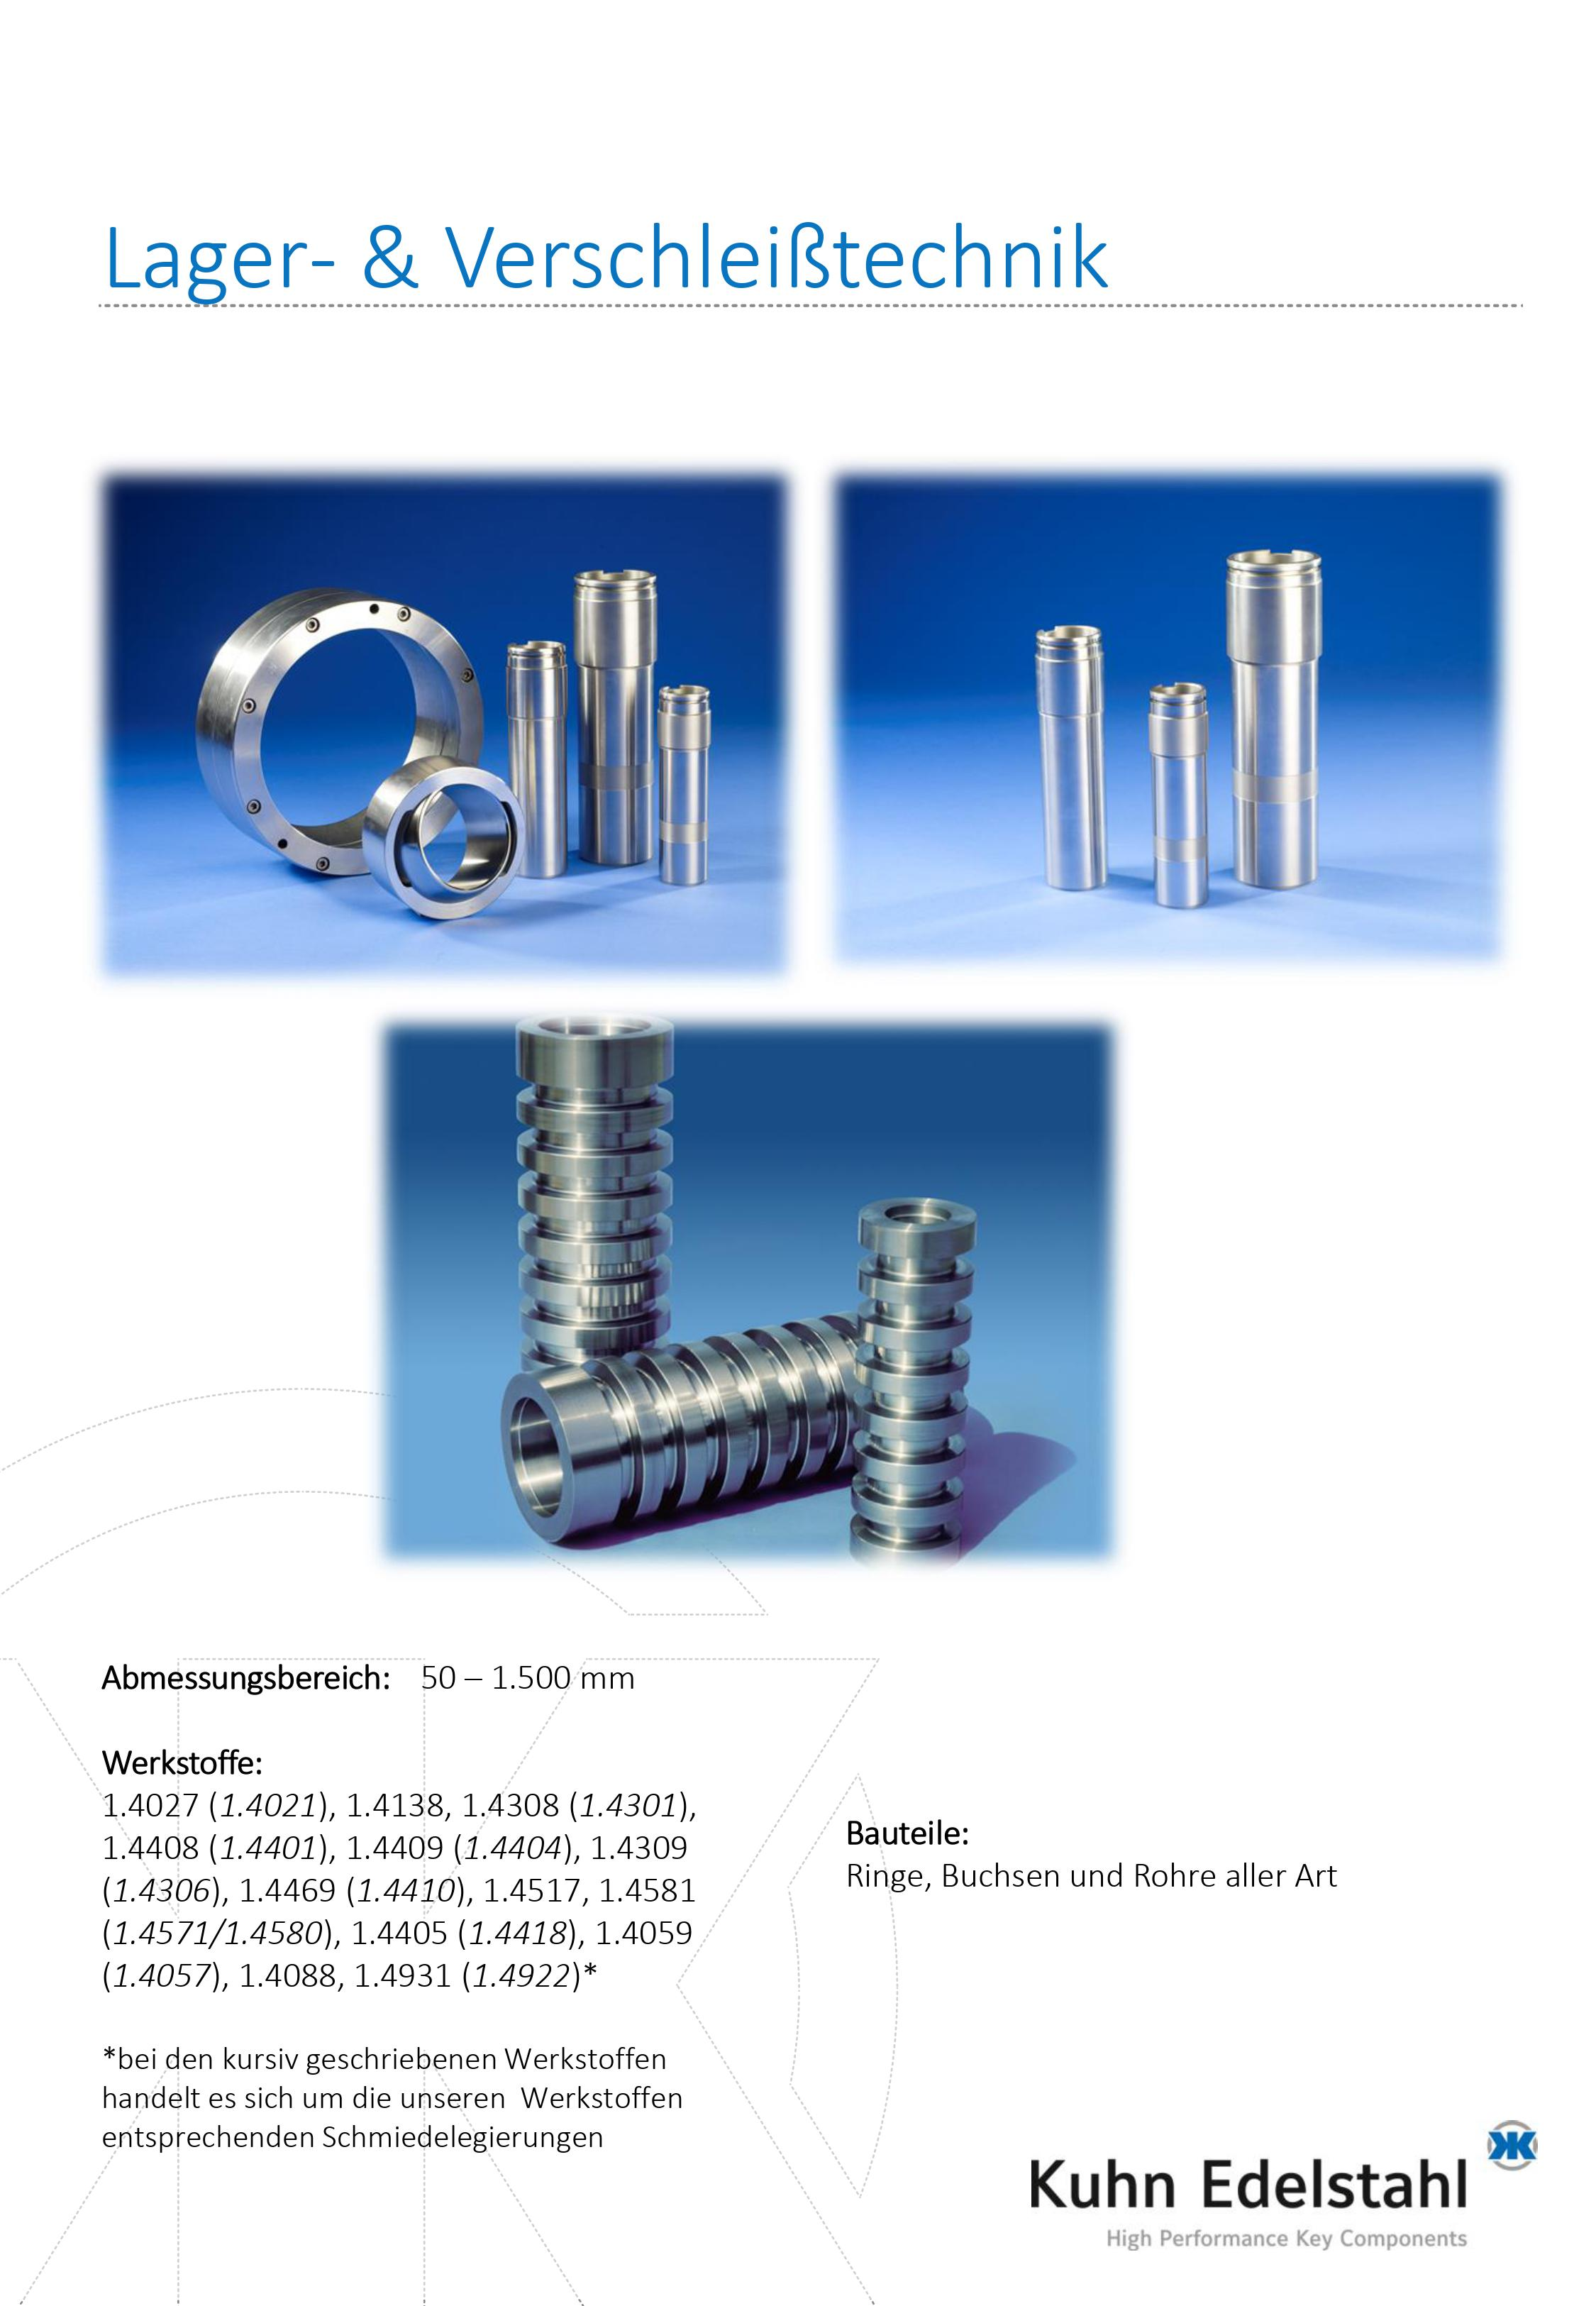 Product picture of rotationally-symmetric stainless steel